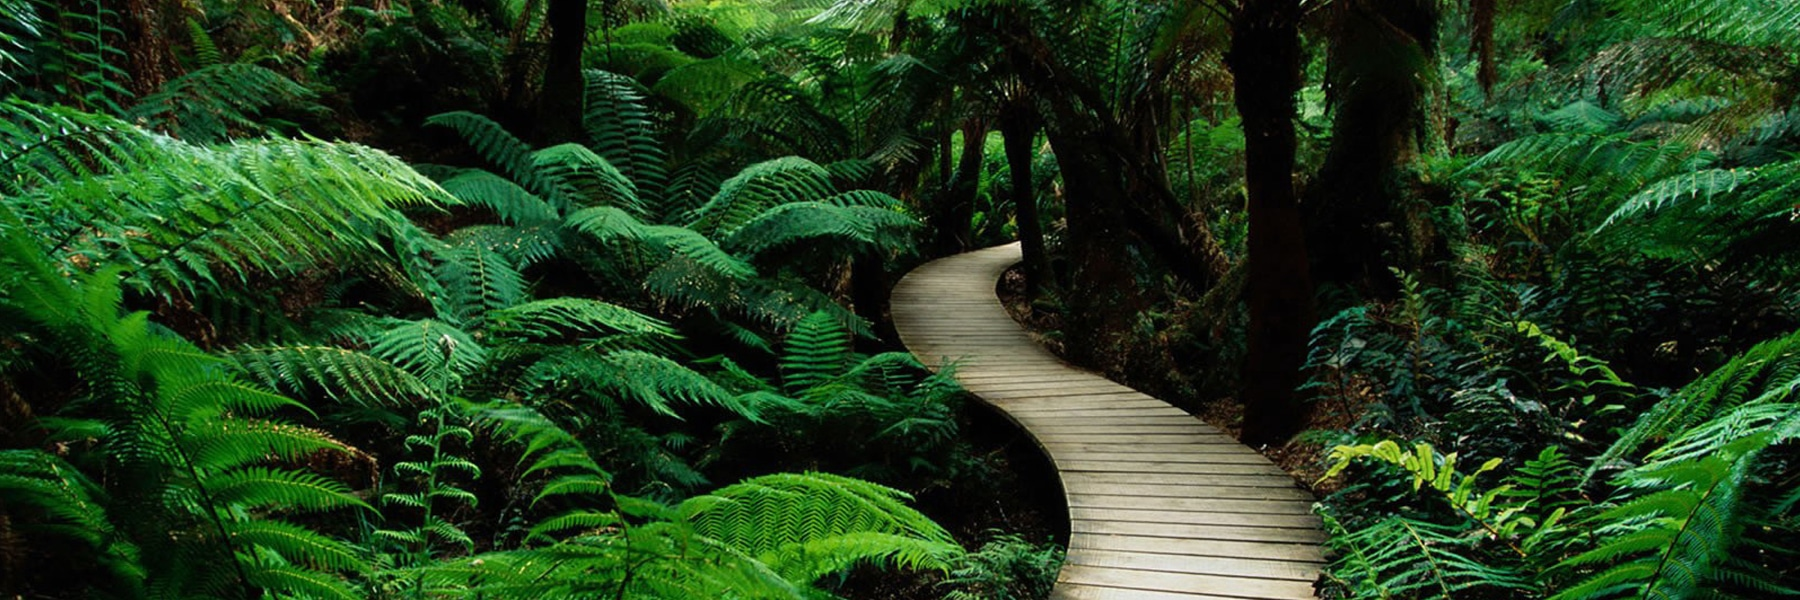 Winding wooden path through the jungle